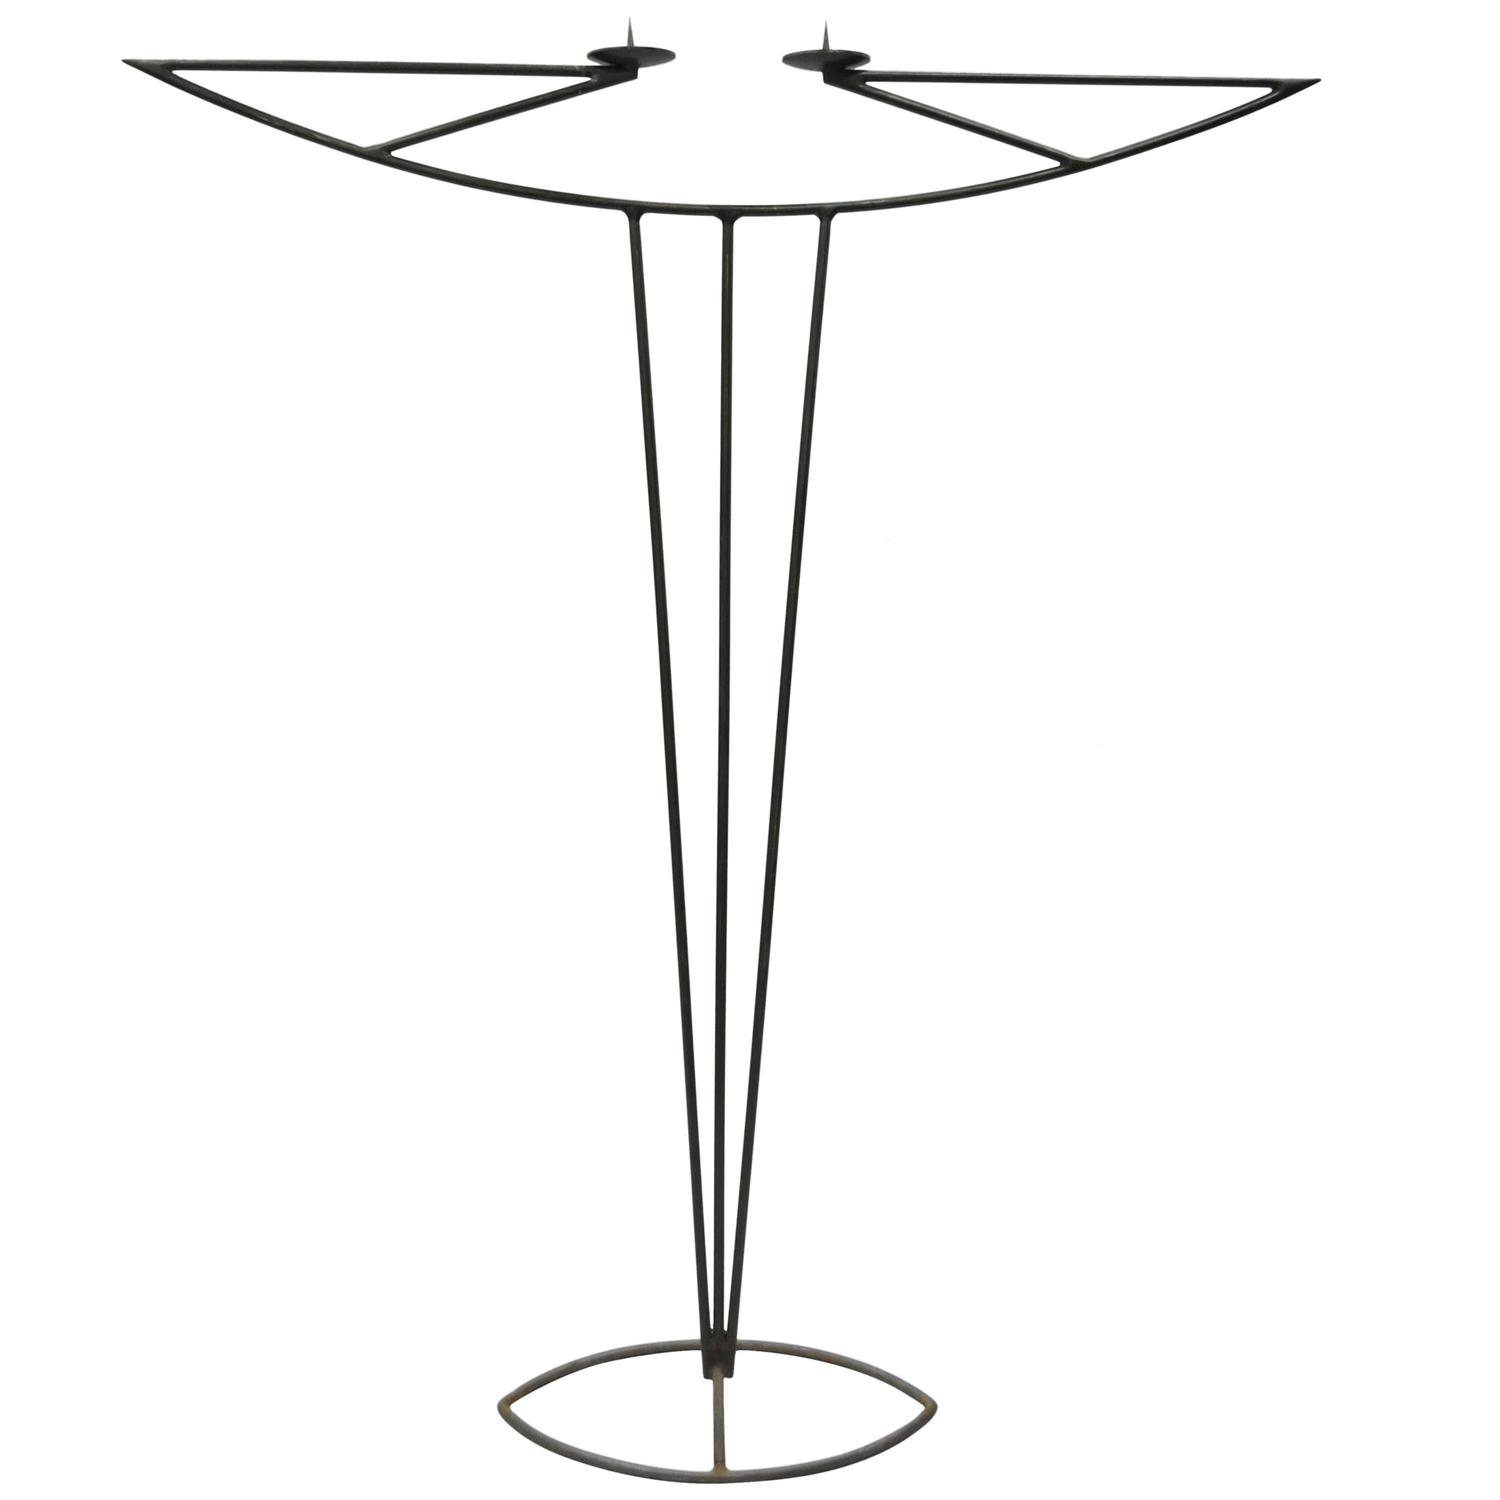 Tall wrought iron candle holders - Tall Vintage Modernist Art Deco Style Wrought Iron Floor Candle Holder Stand